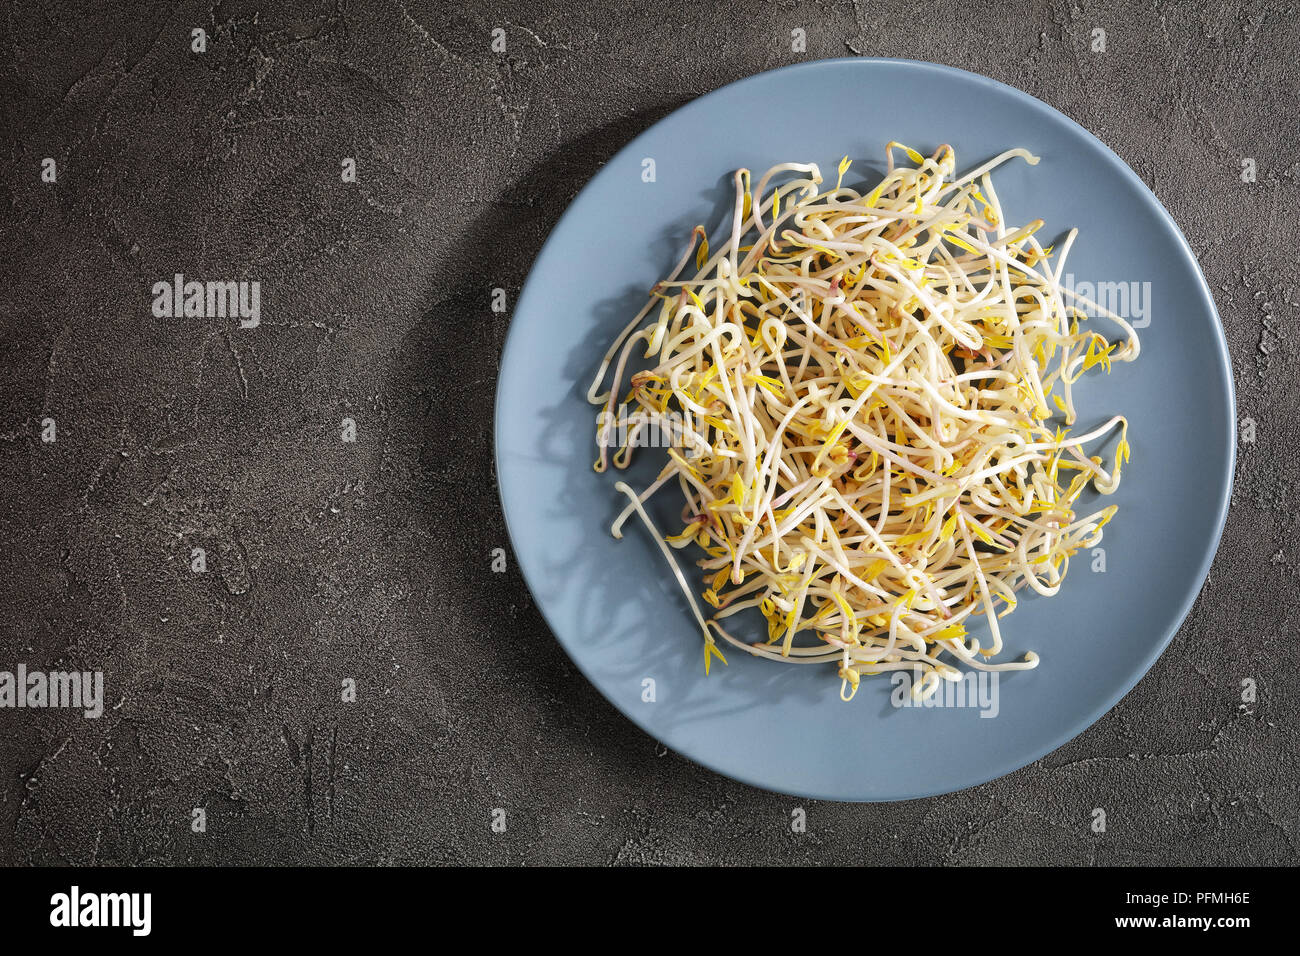 Fresh mung Bean Sprouts on plate on concrete background, major ingredient of asian cuisine, view form above - Stock Image